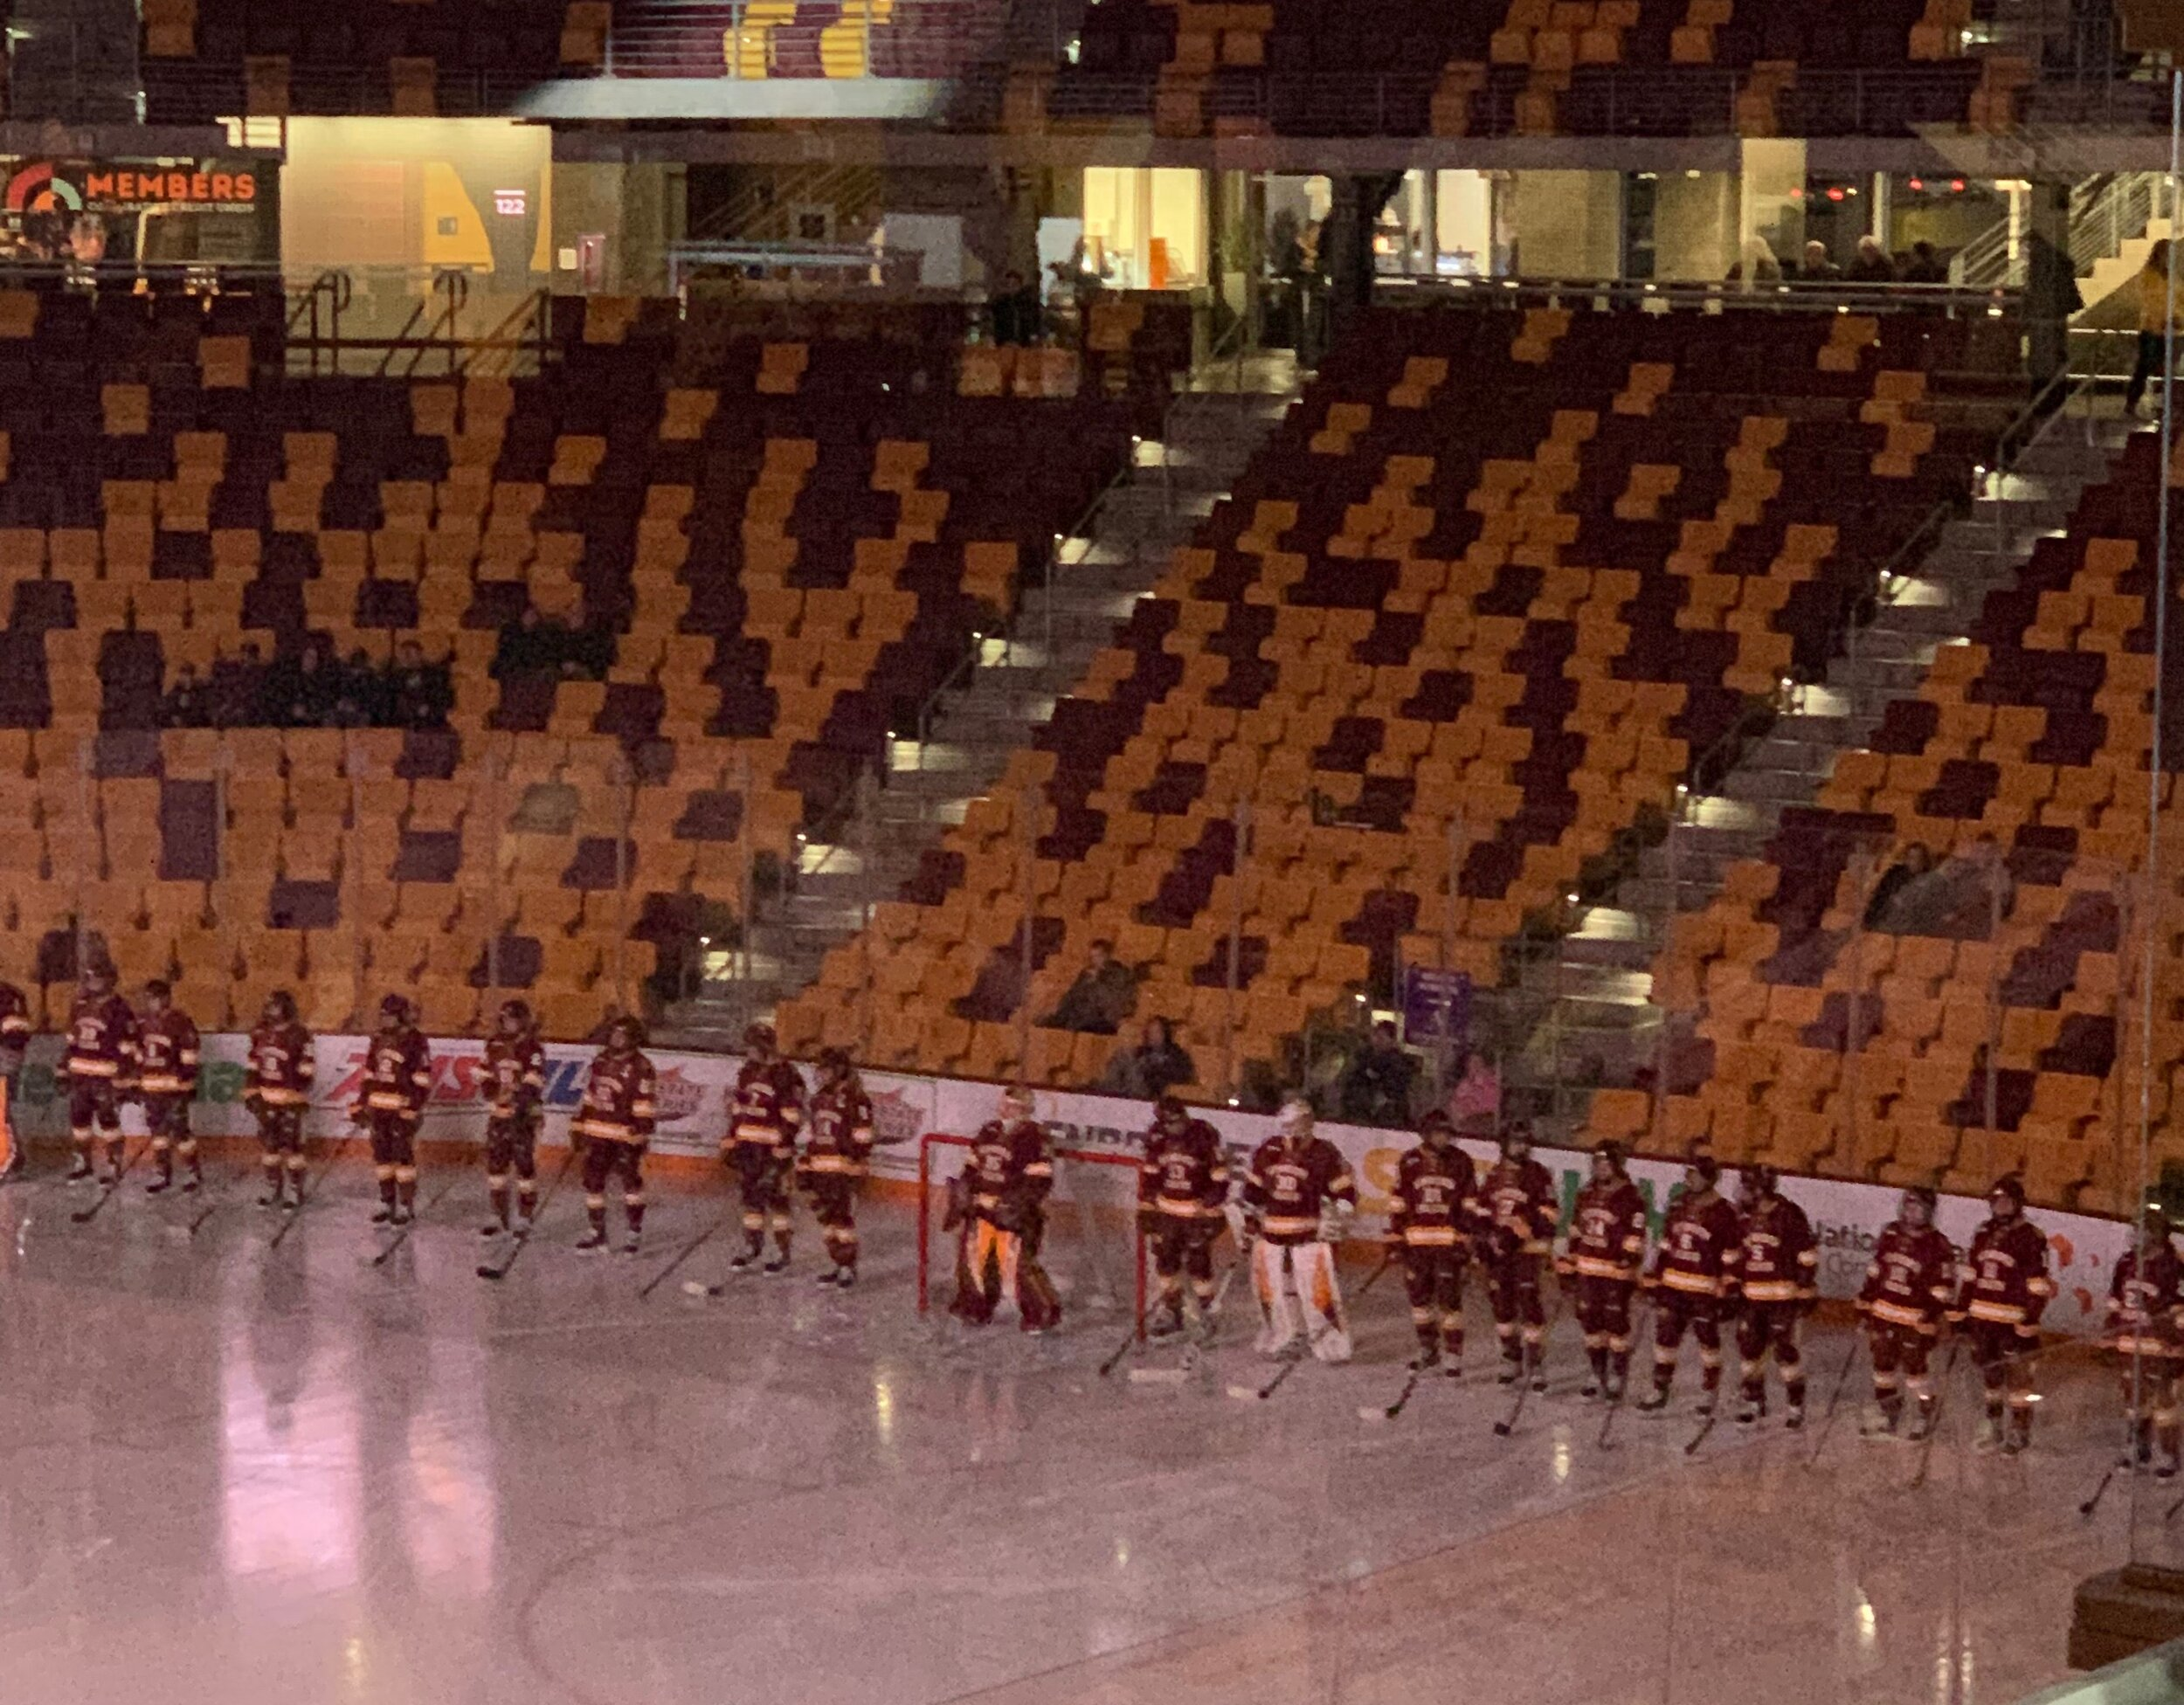 The UMD women's hockey team lines up pre-game for introduction of the starting line up. (Photo: Brett Sharp)